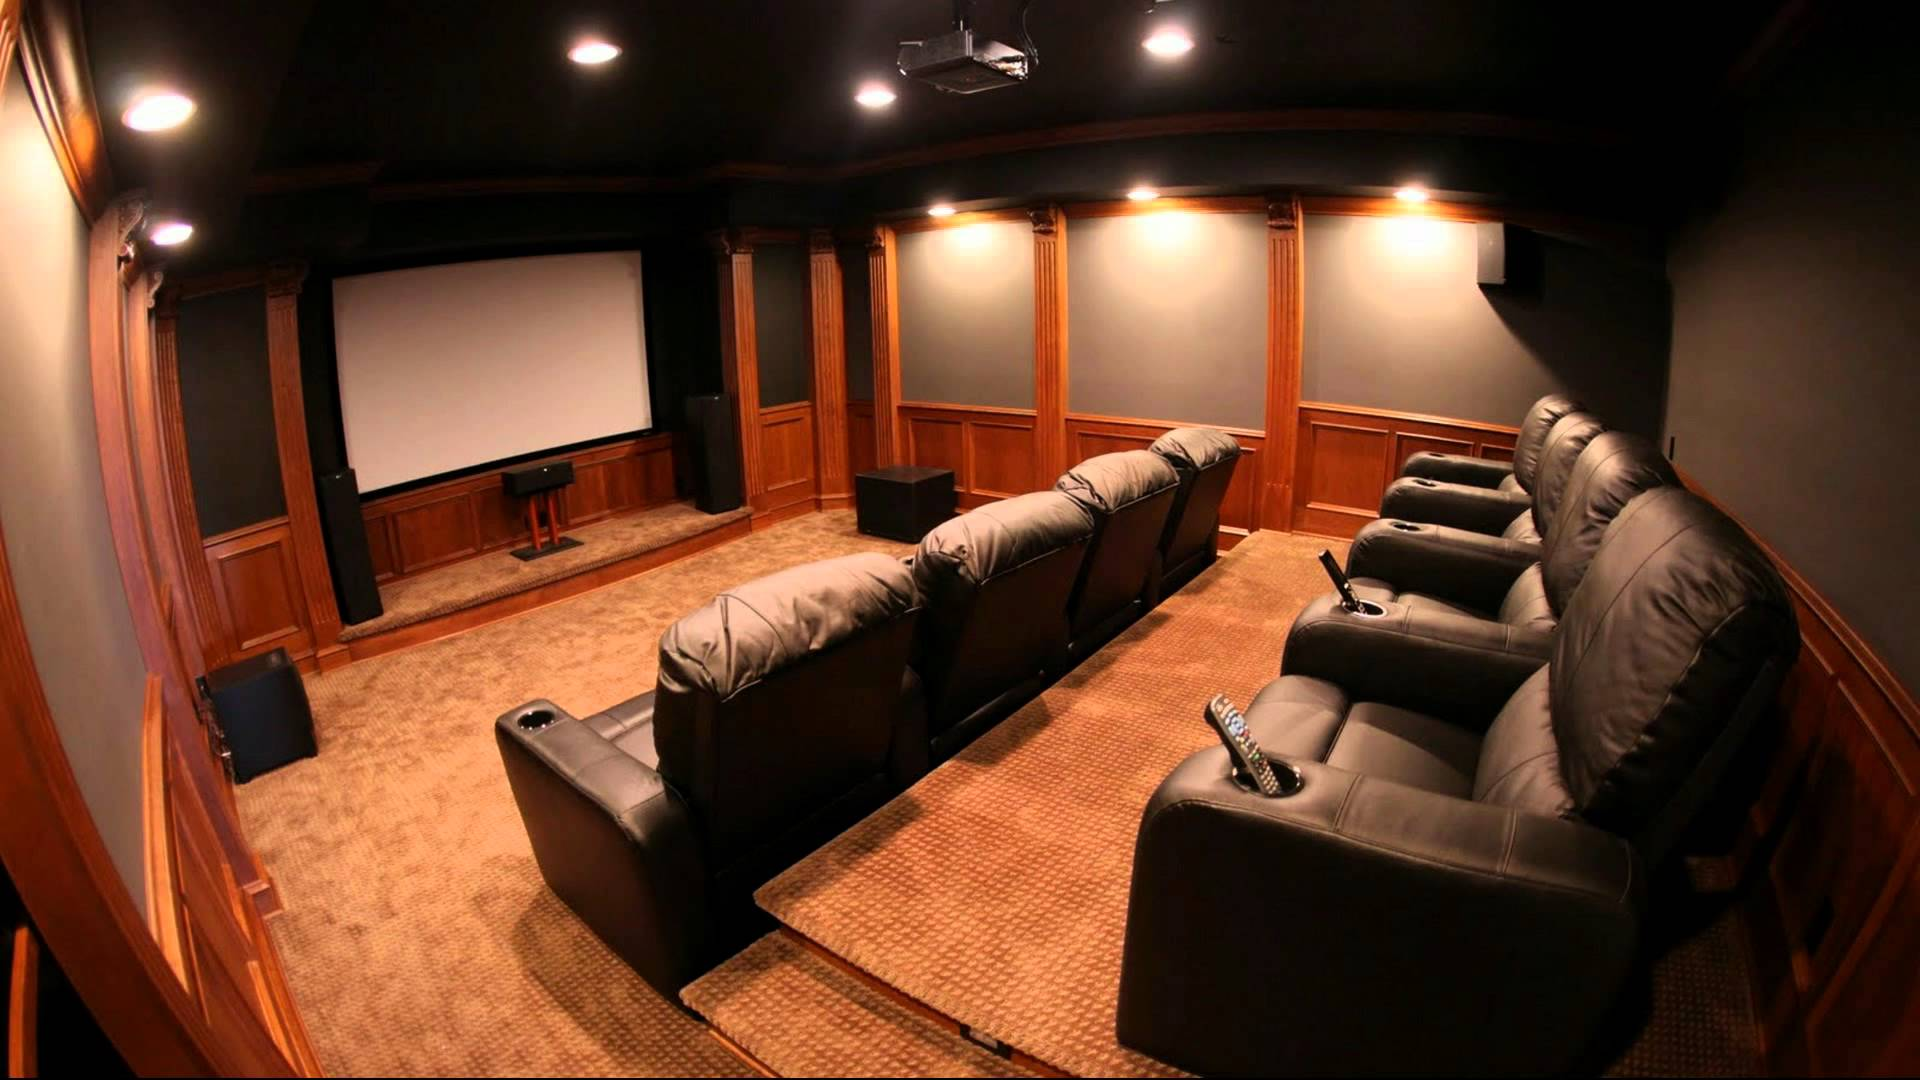 How To Make Your Home Theater Room Sound Better